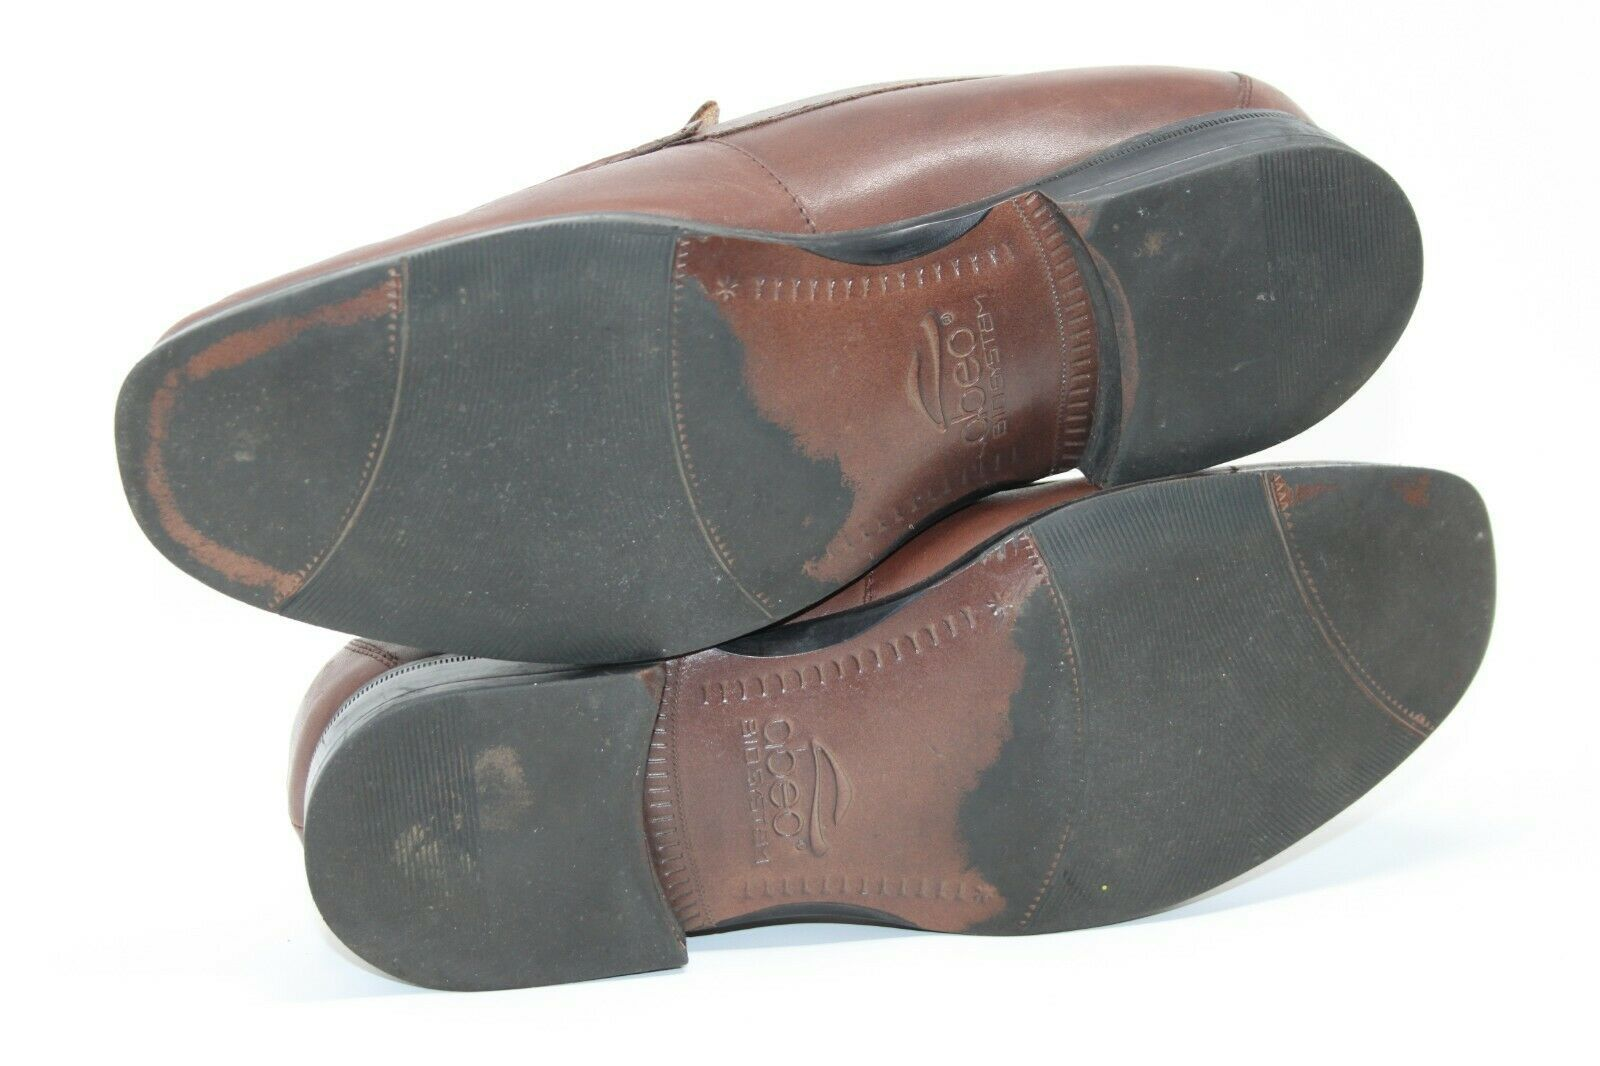 Abeo BIO Size 11 Brown Leather Comfort Slip On Soft Supple Leather Dress Shoes